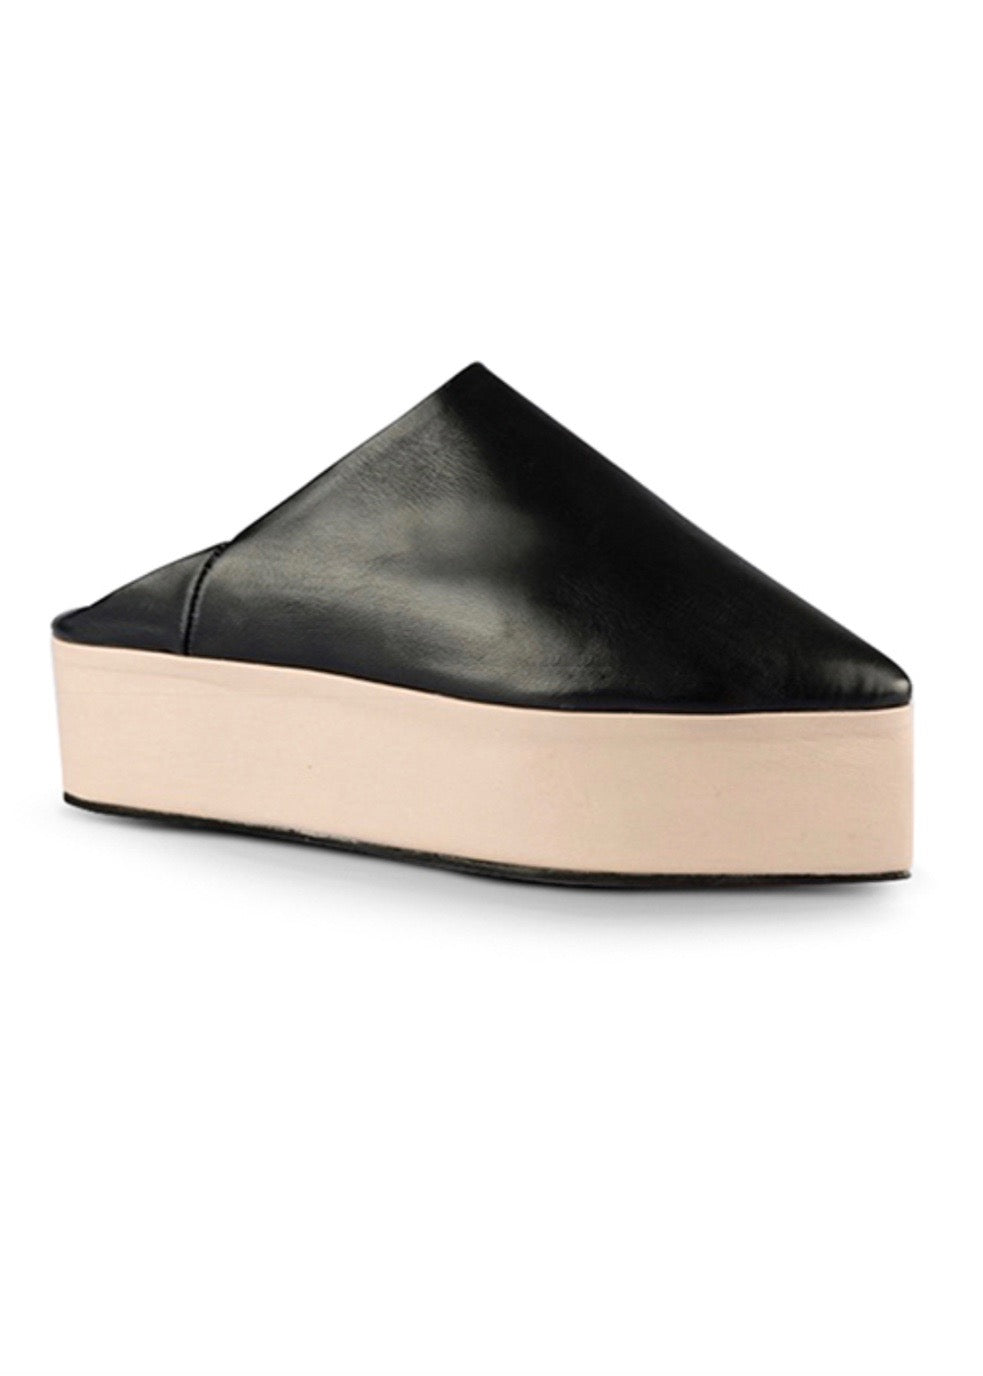 Black and beige two-tone platform babouche shoes